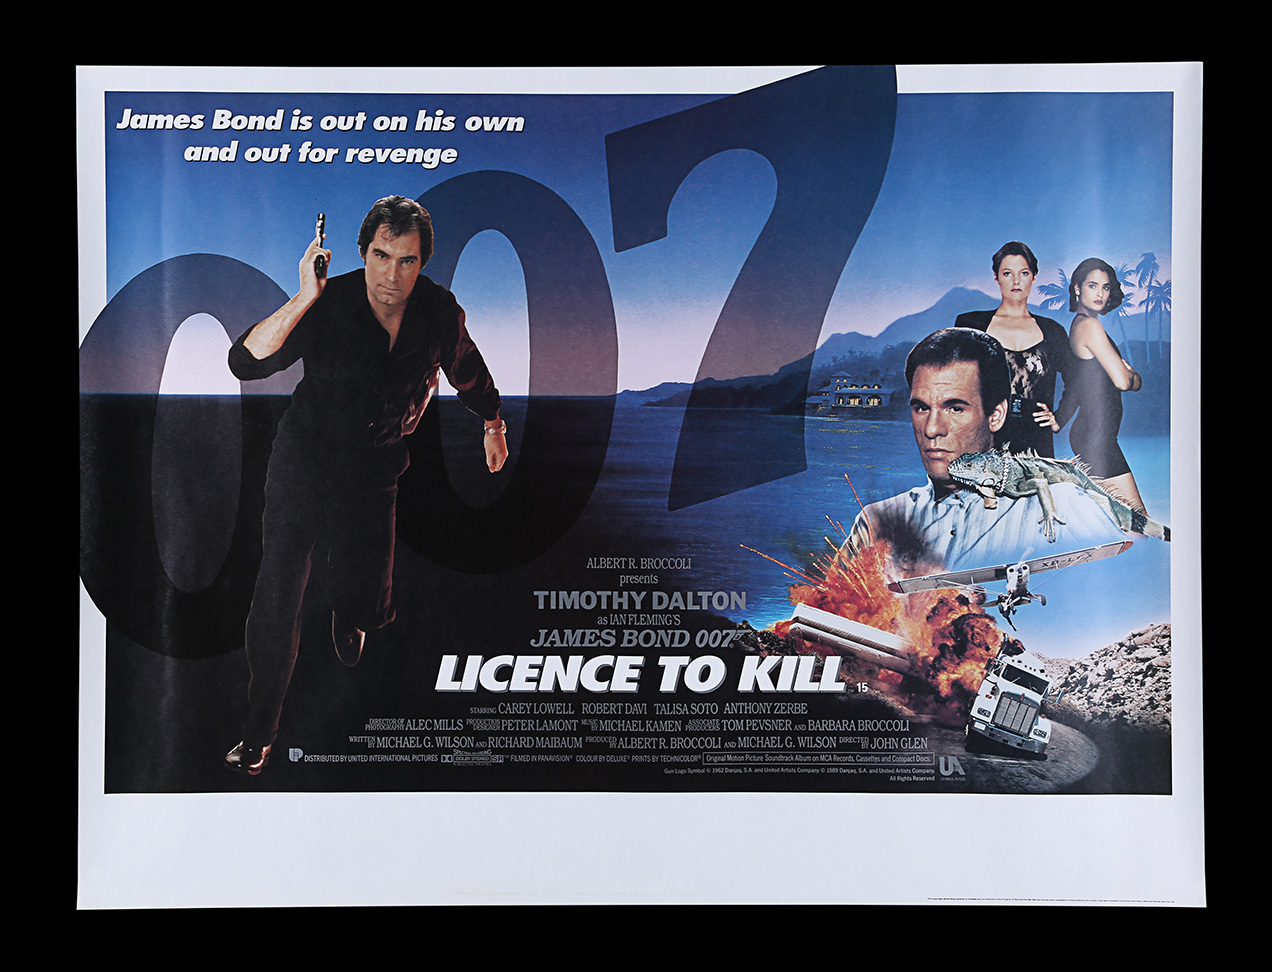 Licence to kill poster win